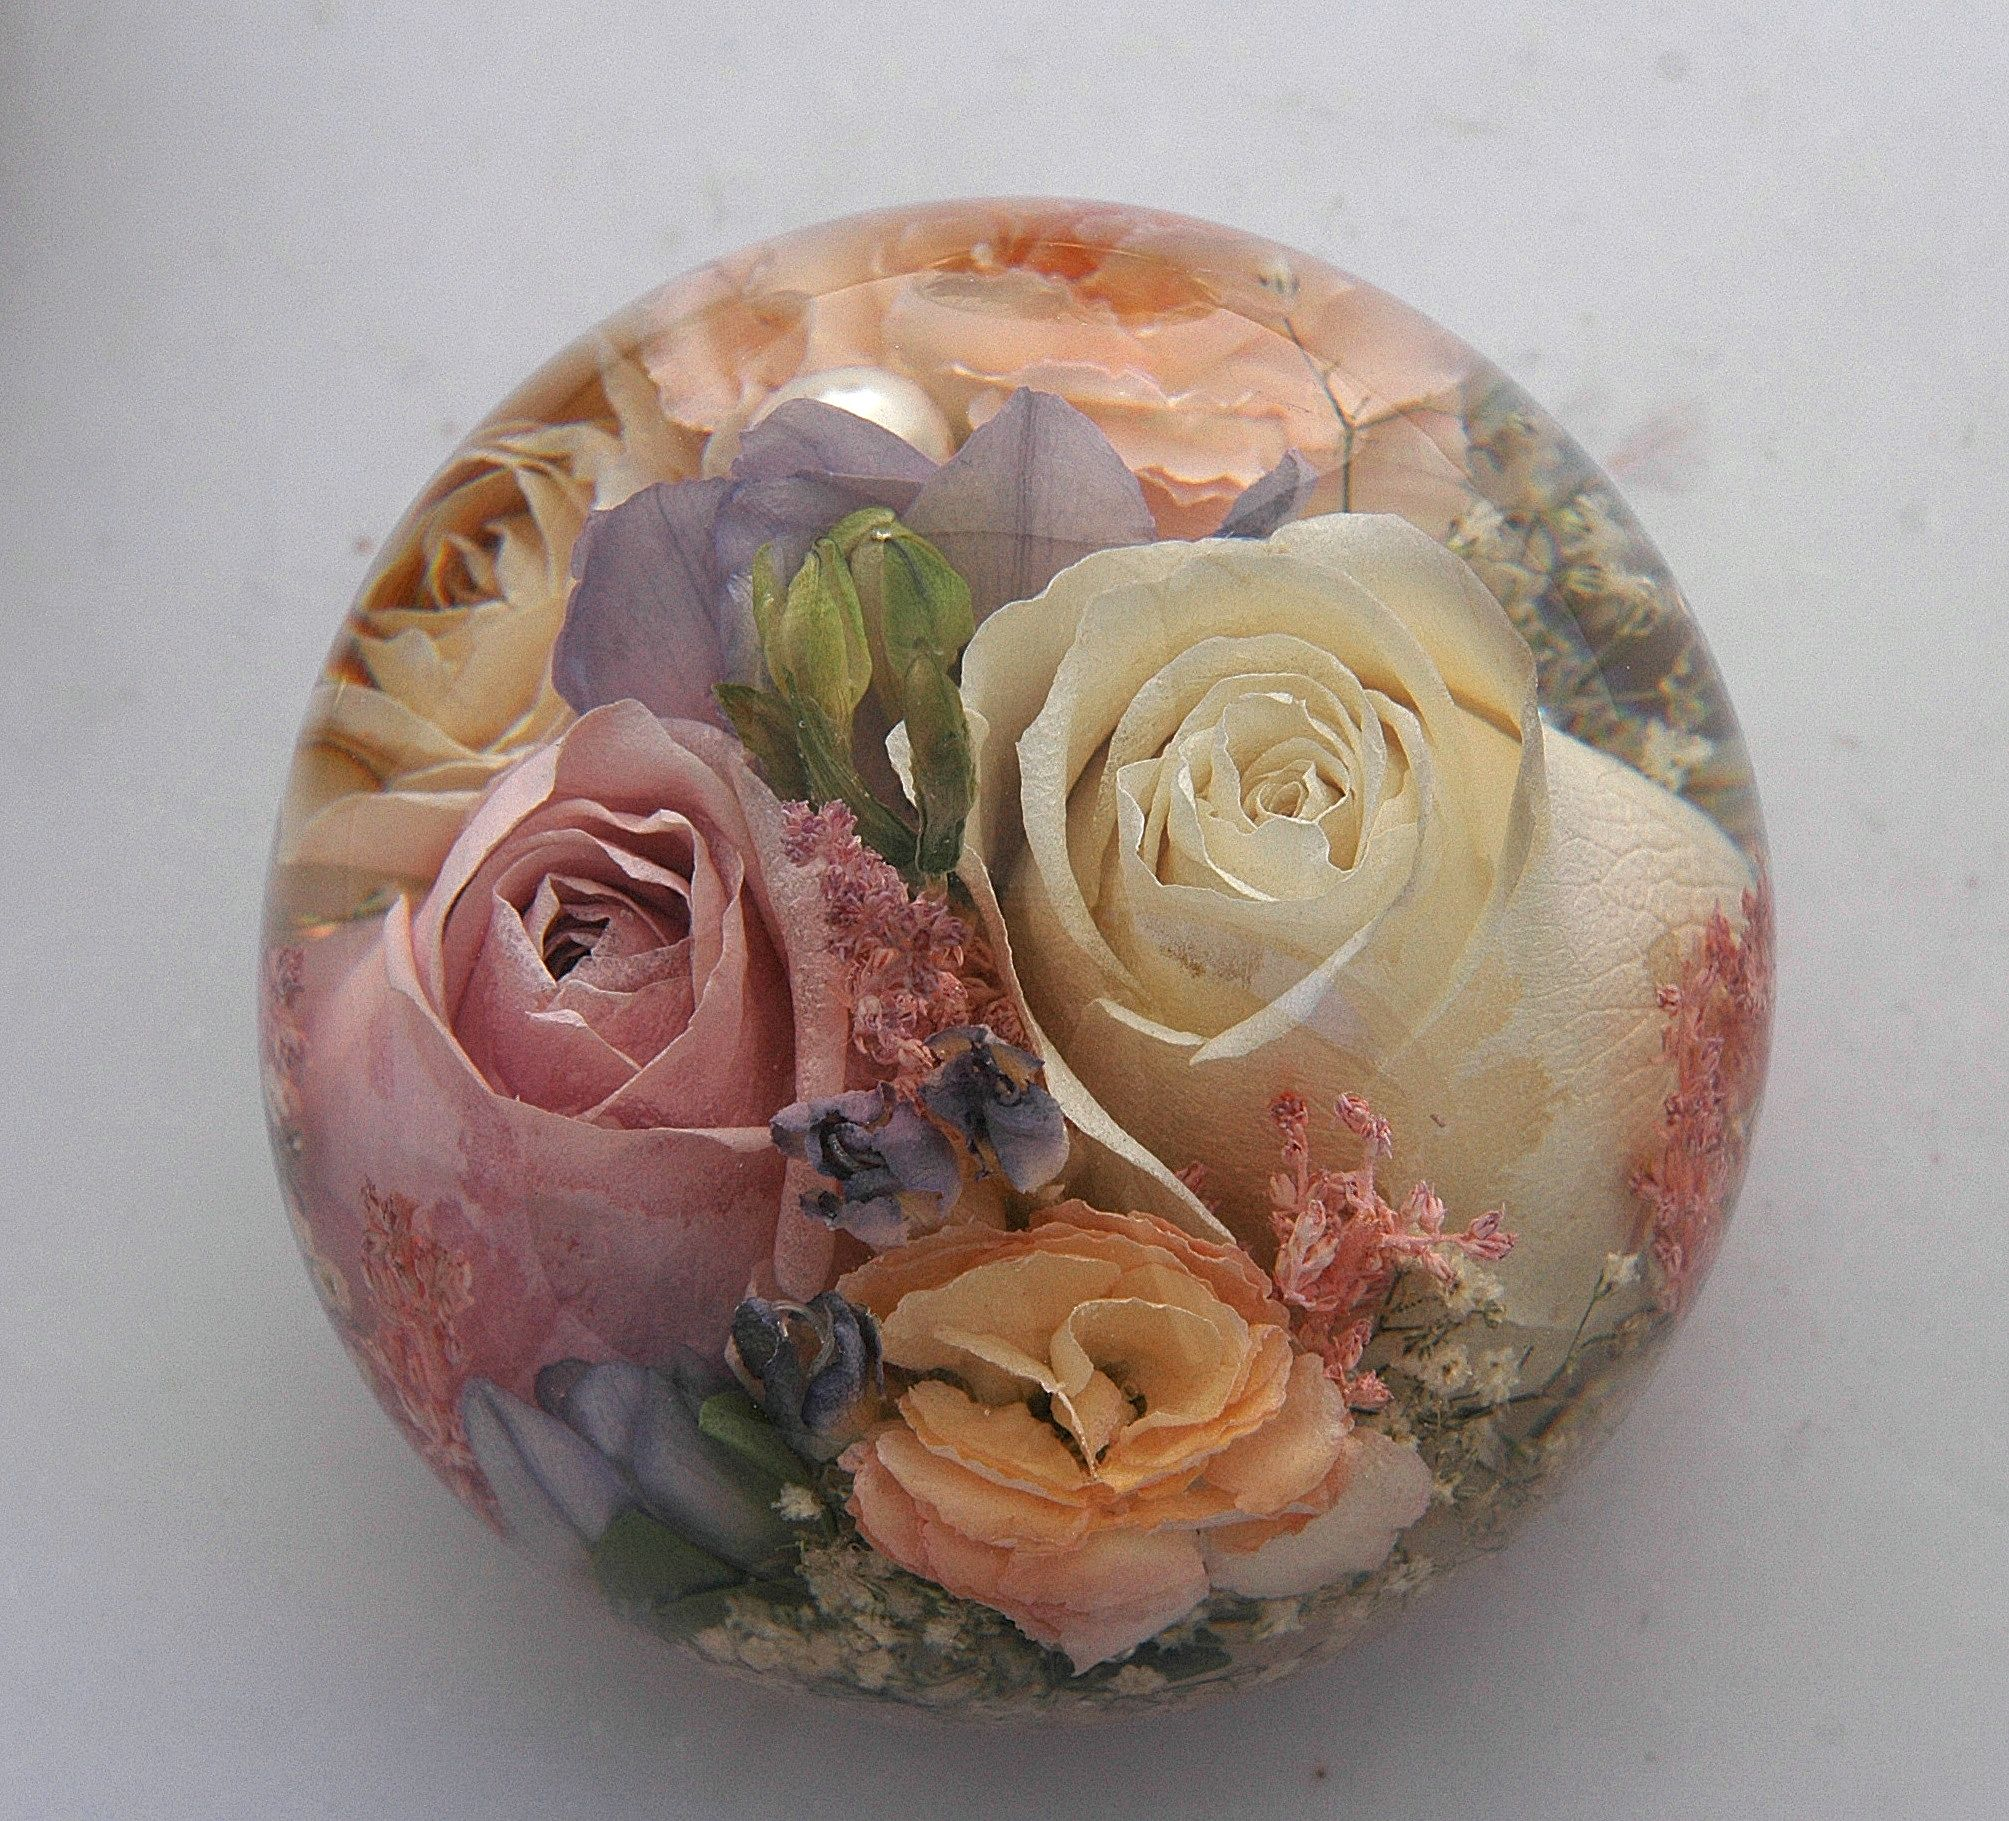 Wedding Flowers In Resin: Luxury Paperweight Made With Your Bridal Flowers